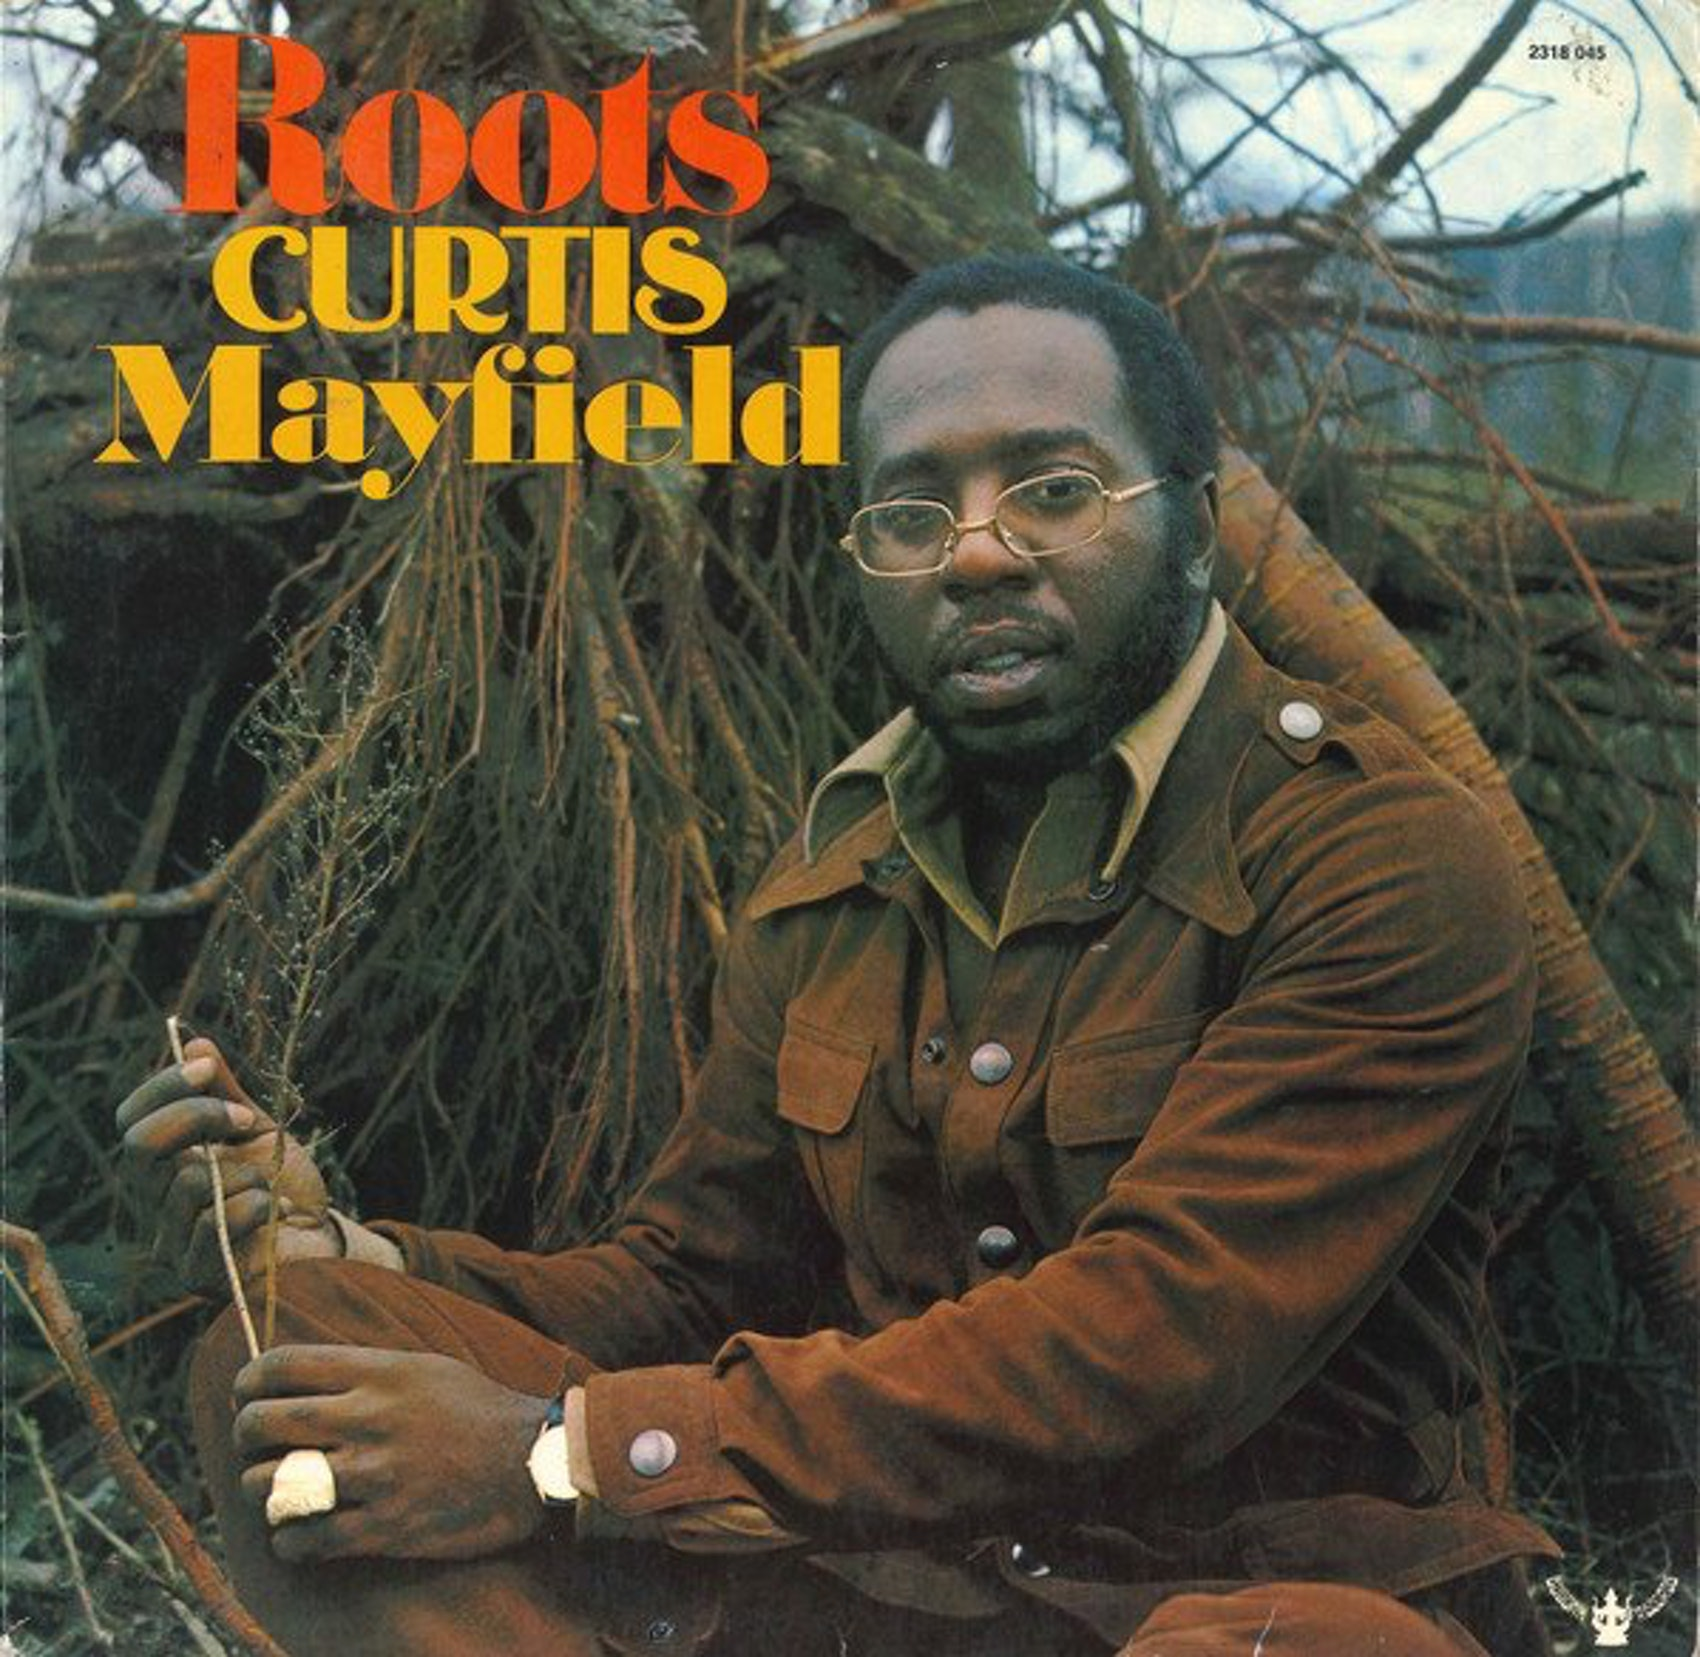 the 10 best curtis mayfield albums to own on vinyl vinyl me please. Black Bedroom Furniture Sets. Home Design Ideas